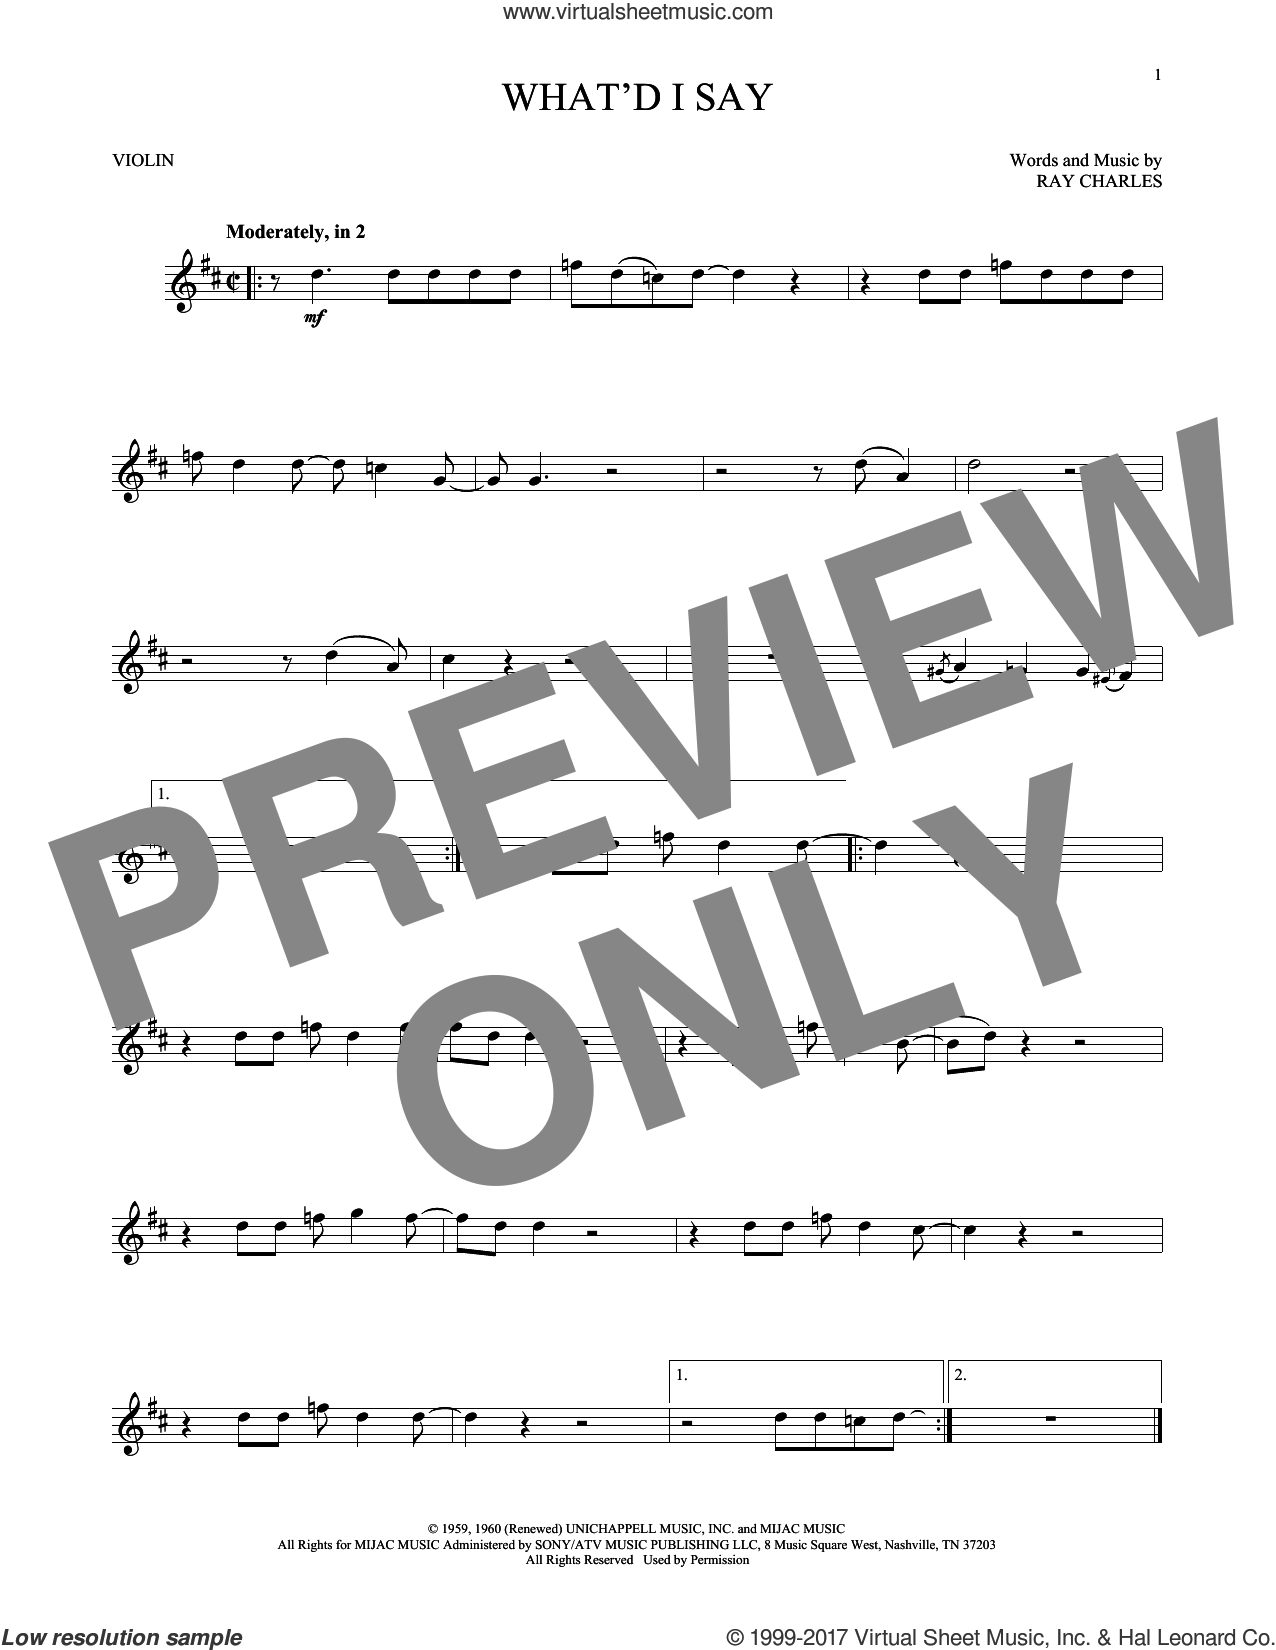 What'd I Say sheet music for violin solo by Ray Charles, intermediate skill level